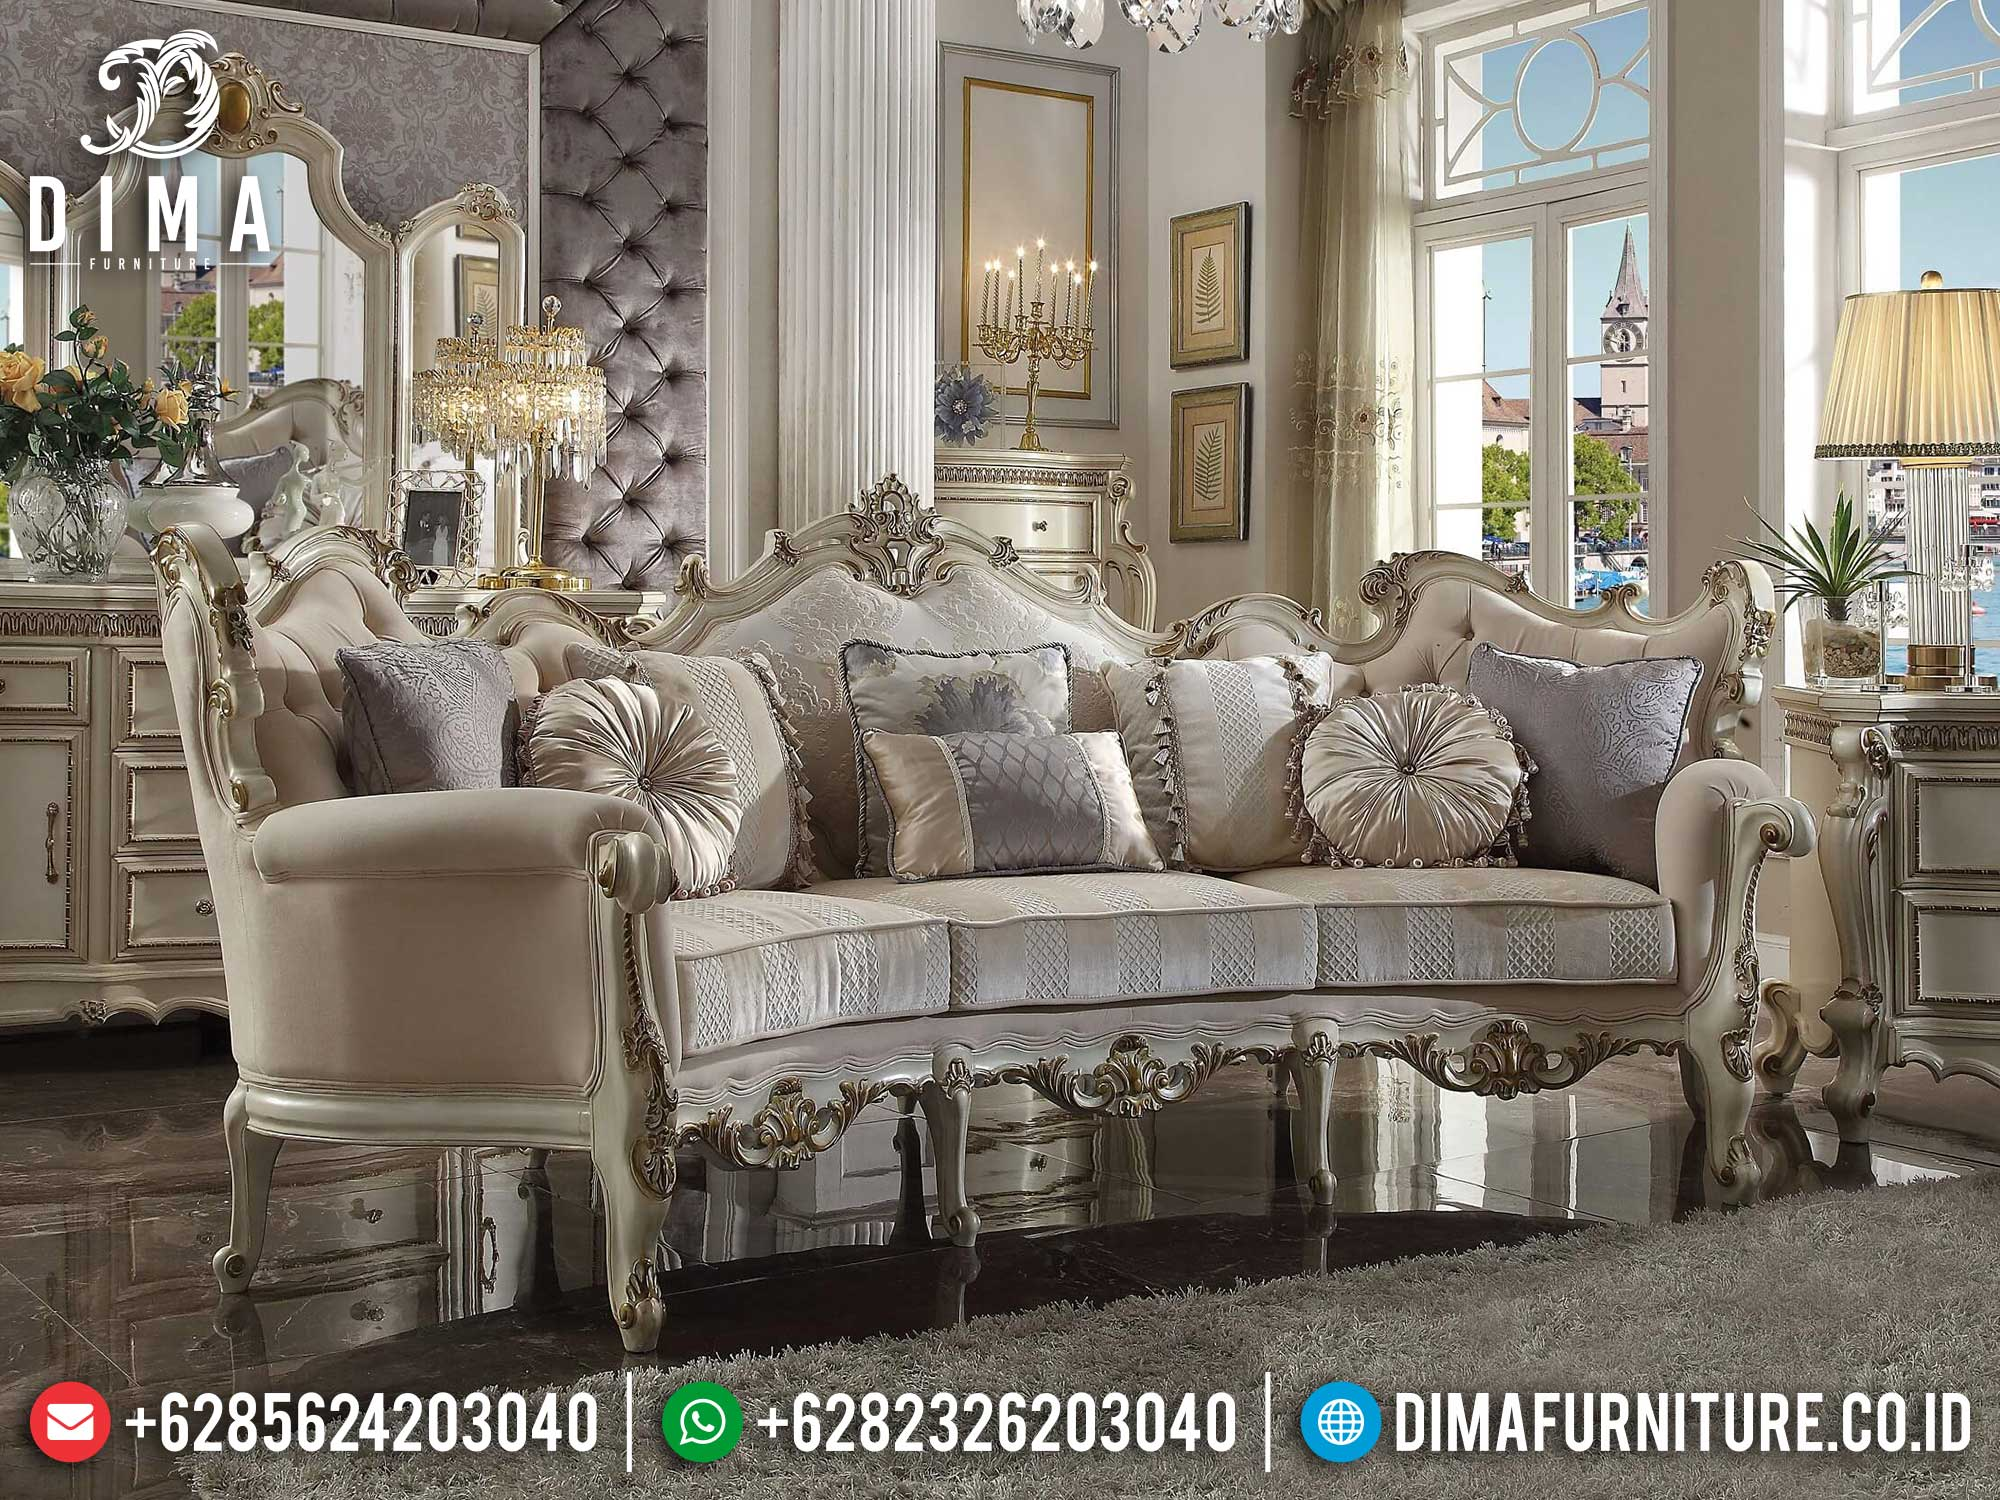 Sofa Tamu Mewah Terbaru Classic Adorable Design Luxury Furniture Jepara Mm-0898